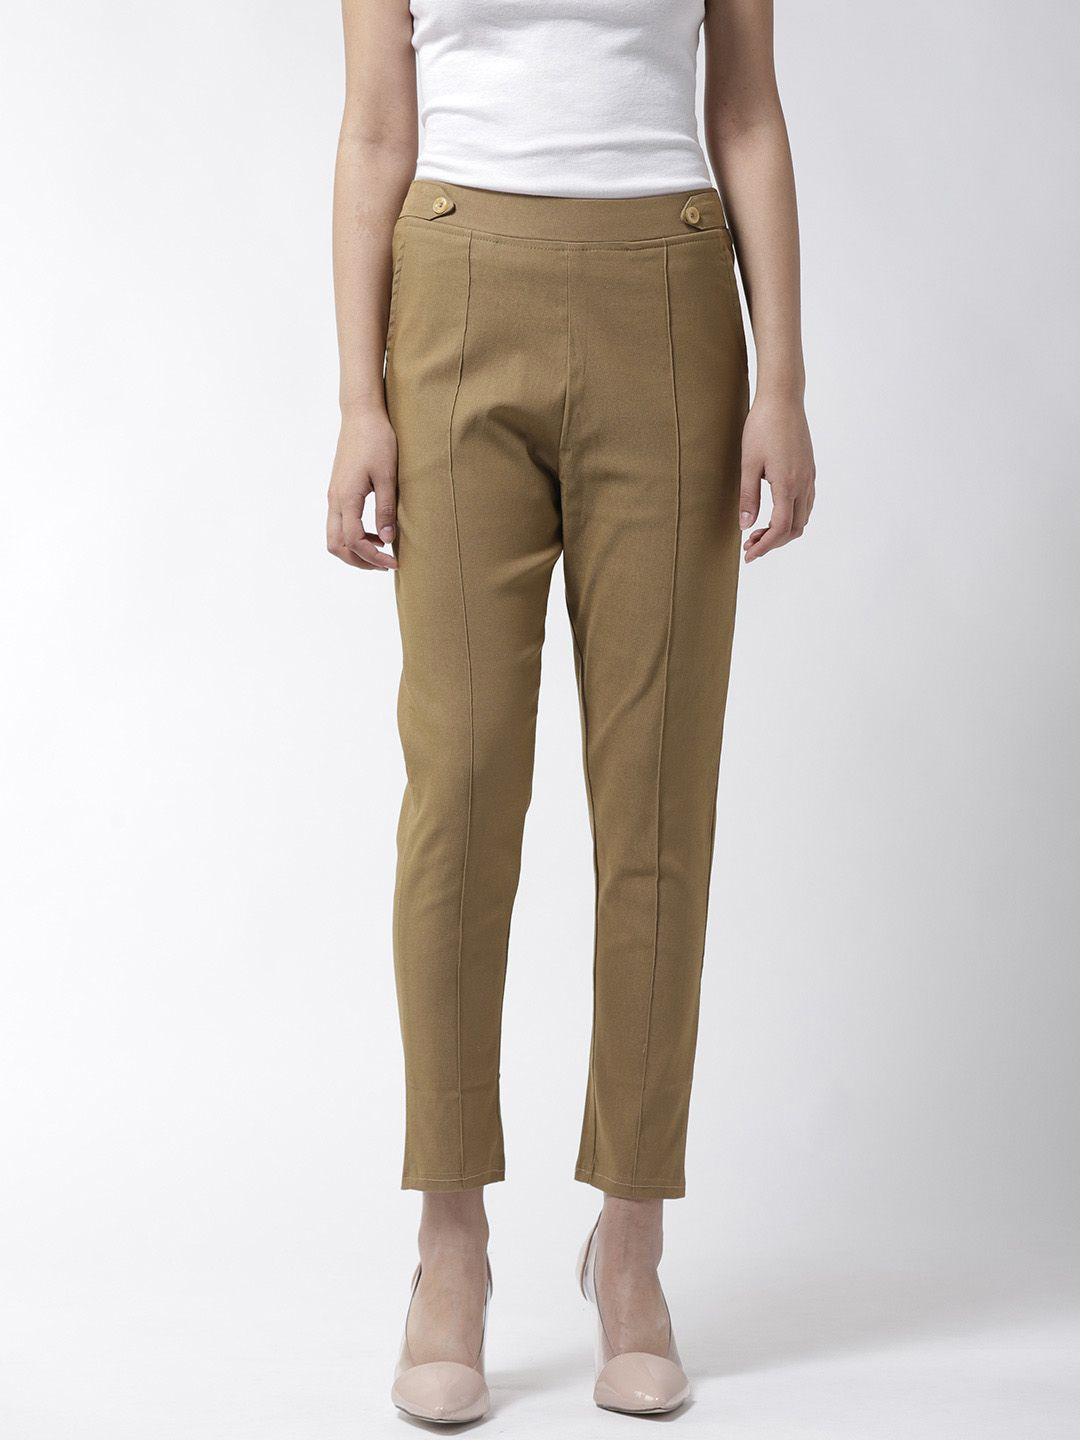 La Zoire Cotton Lycra Jeggings - Khaki